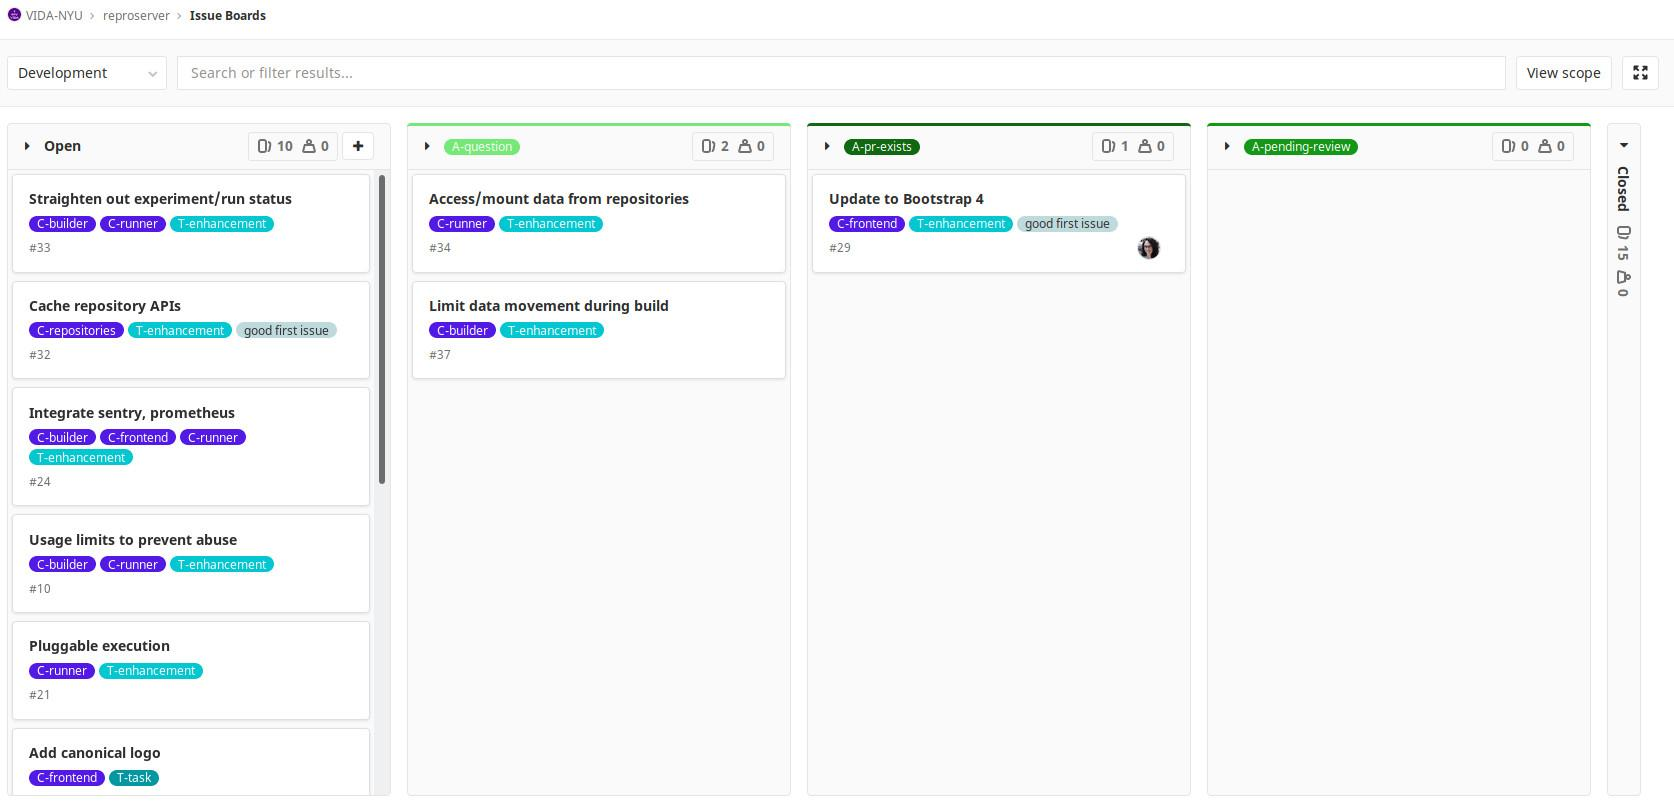 Screenshot of ViDA-NYUs GitLab repository Issue Boards page.